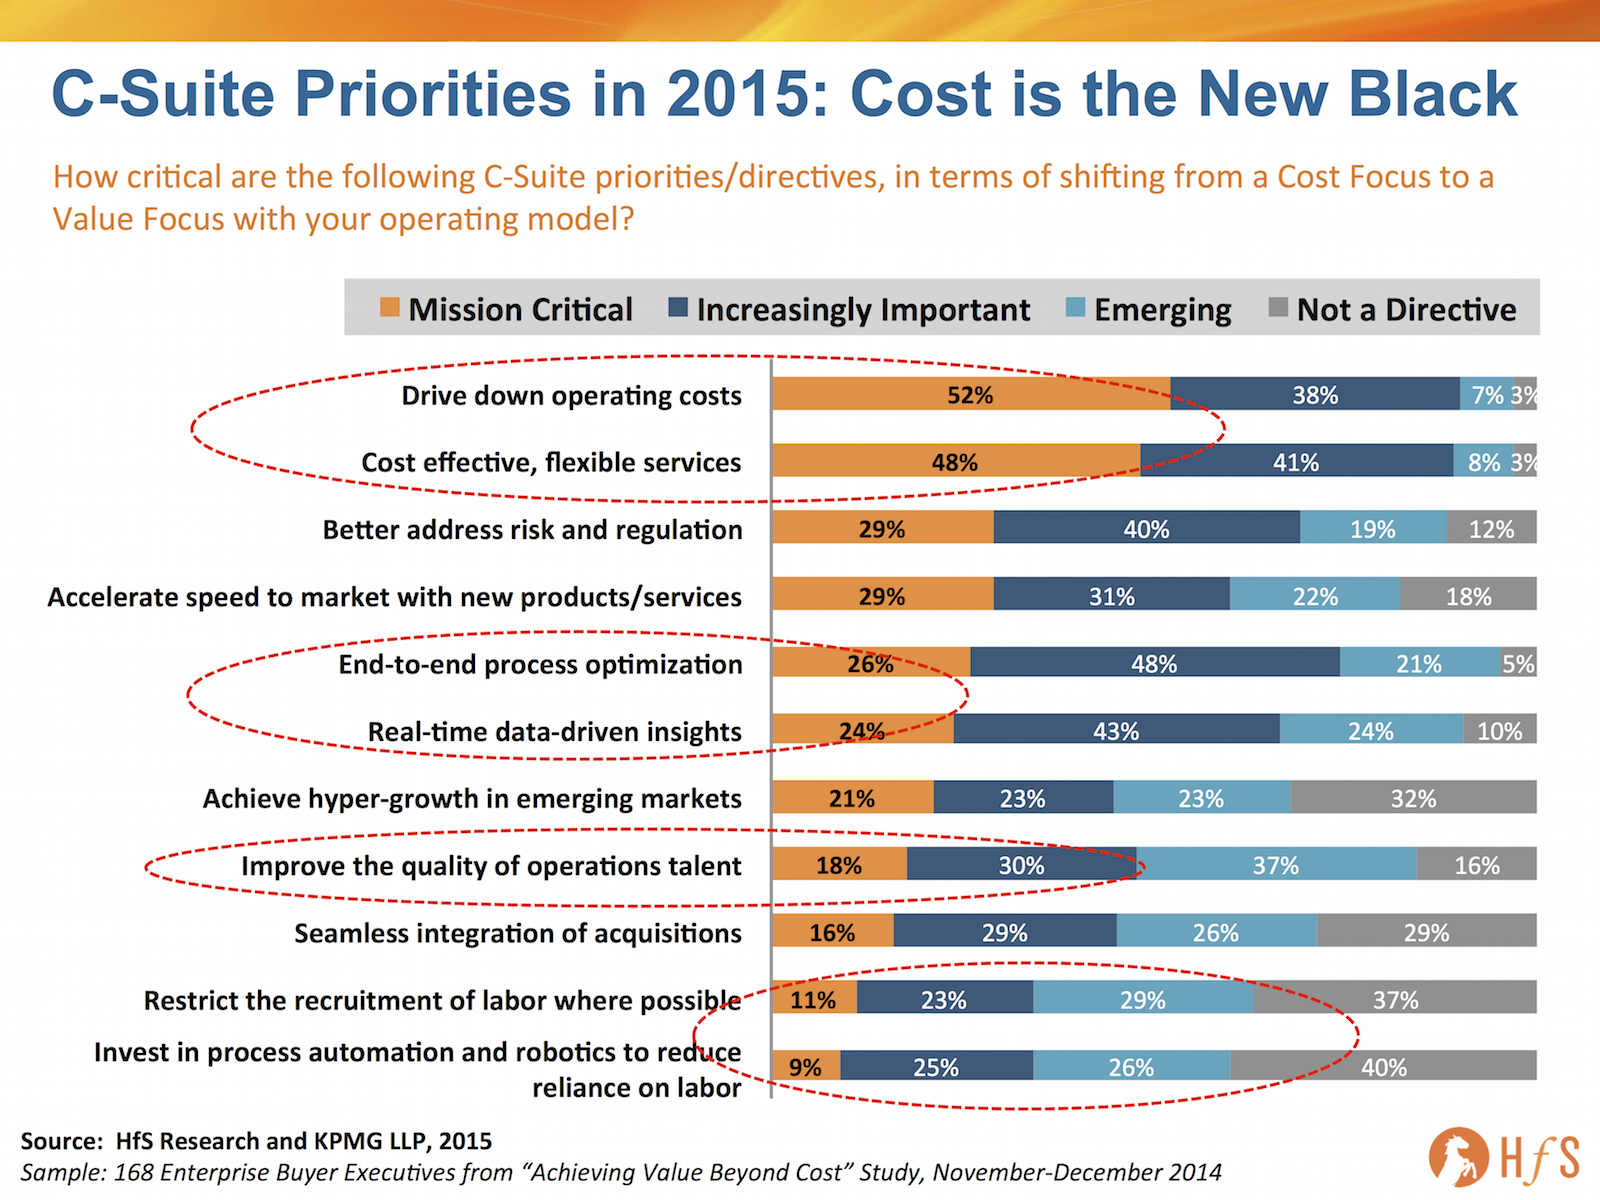 Cost is the New Black: The Overbearing Paradoxical C-Suite Imperative for 2015